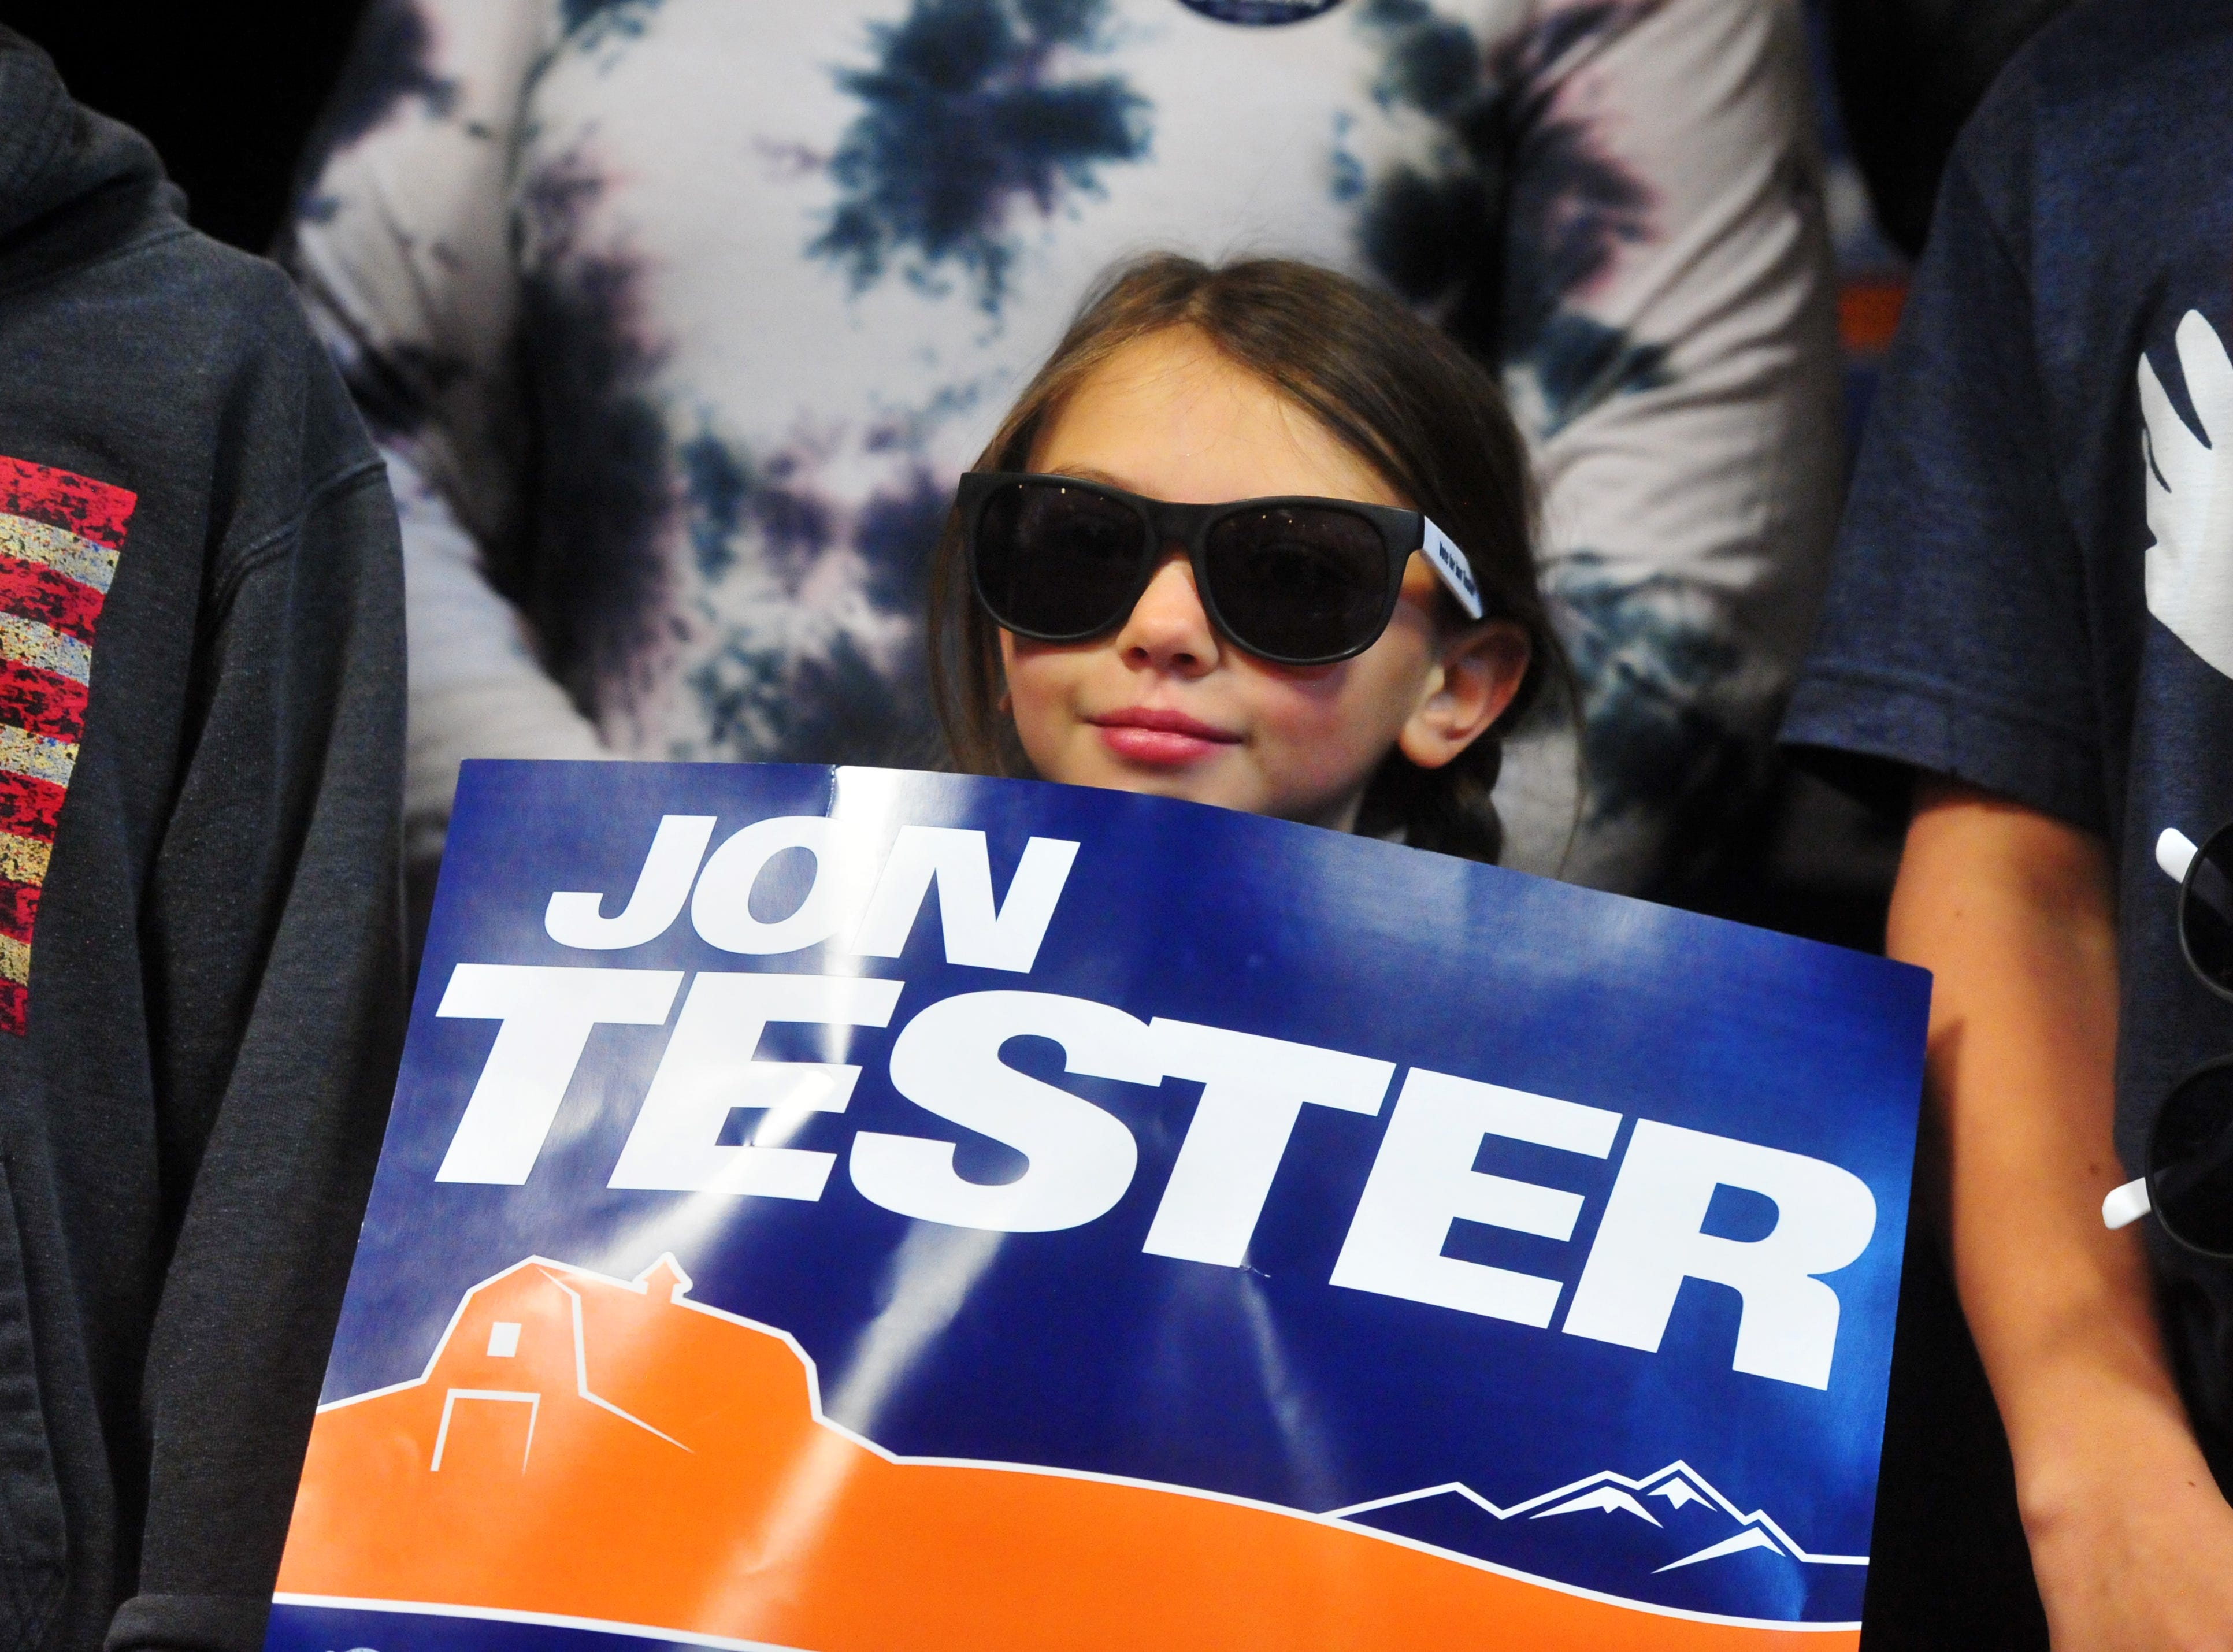 Senator Jon Tester's granddaughter, Abby Wall, holds up her grandfather's campaign sign during his victory rally on Wednesday morning at the Holiday Inn in Great Falls.